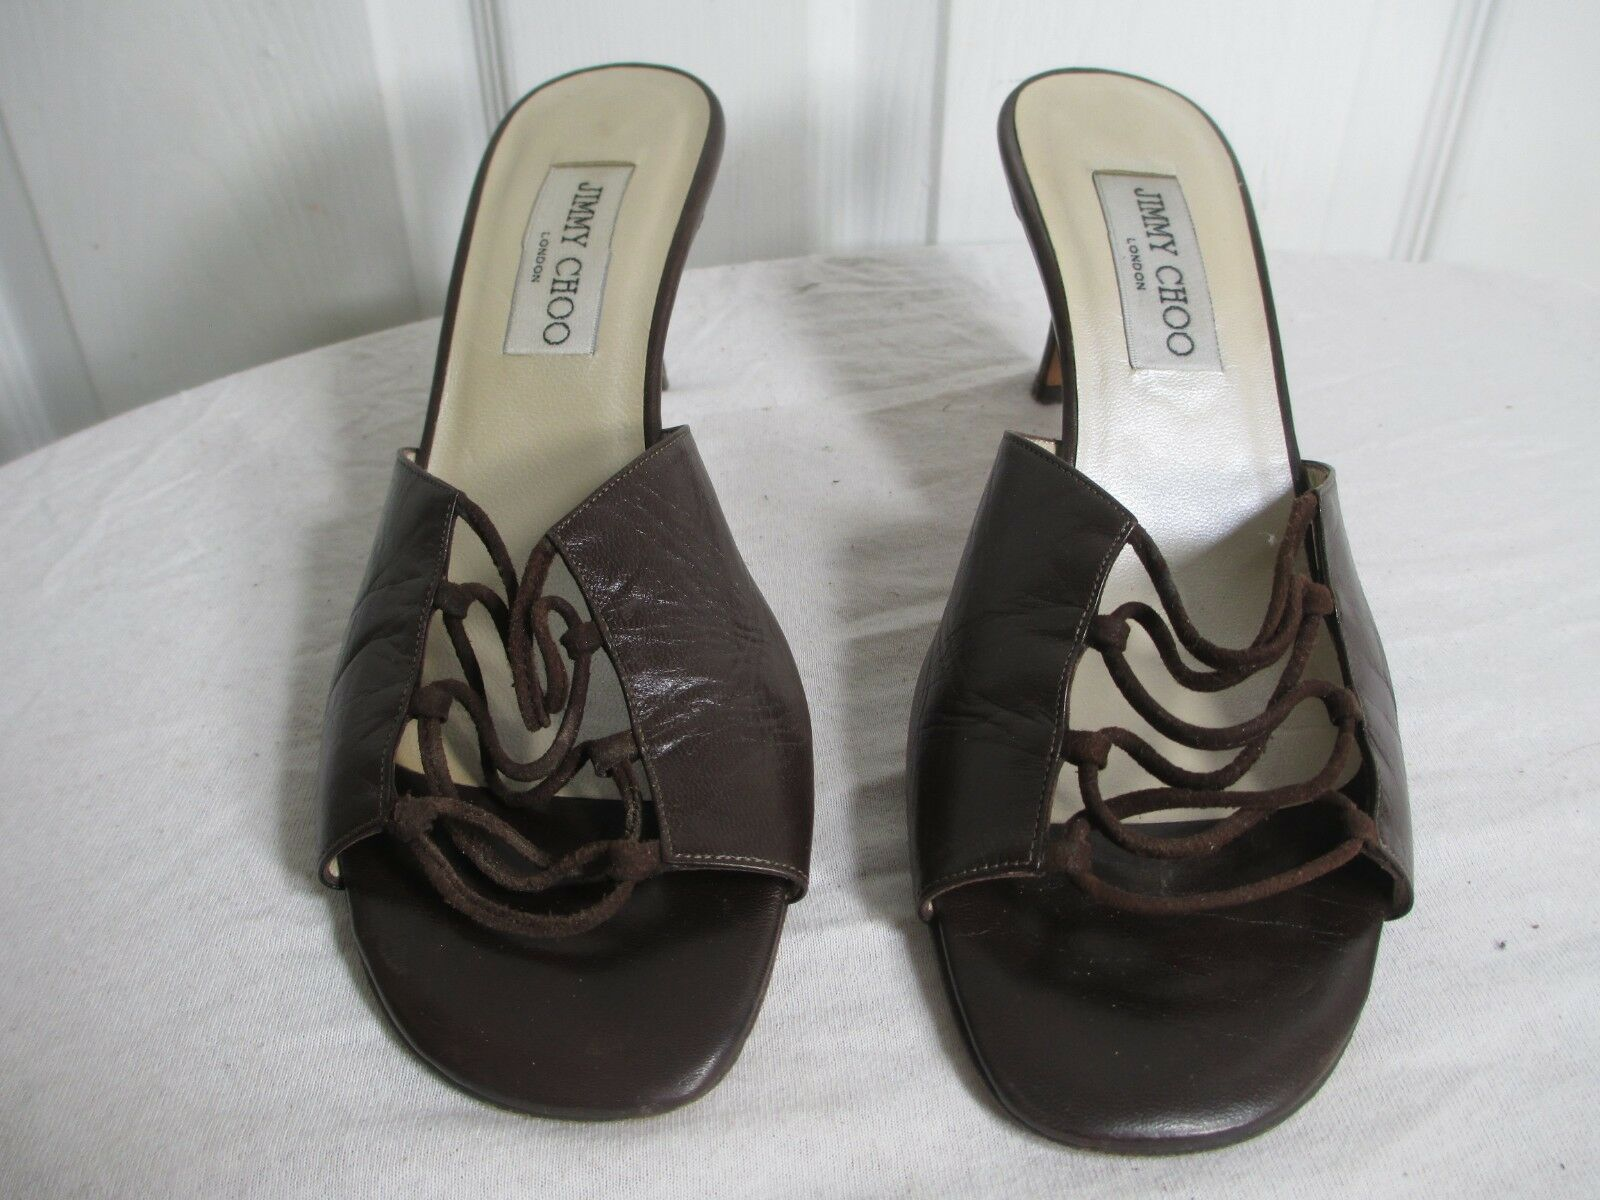 JIMMY CHOO HEEL SLIDES BROWN LEATHER OPEN TOE SHOES SIZE 39½ US 9 MADE IN ITALY